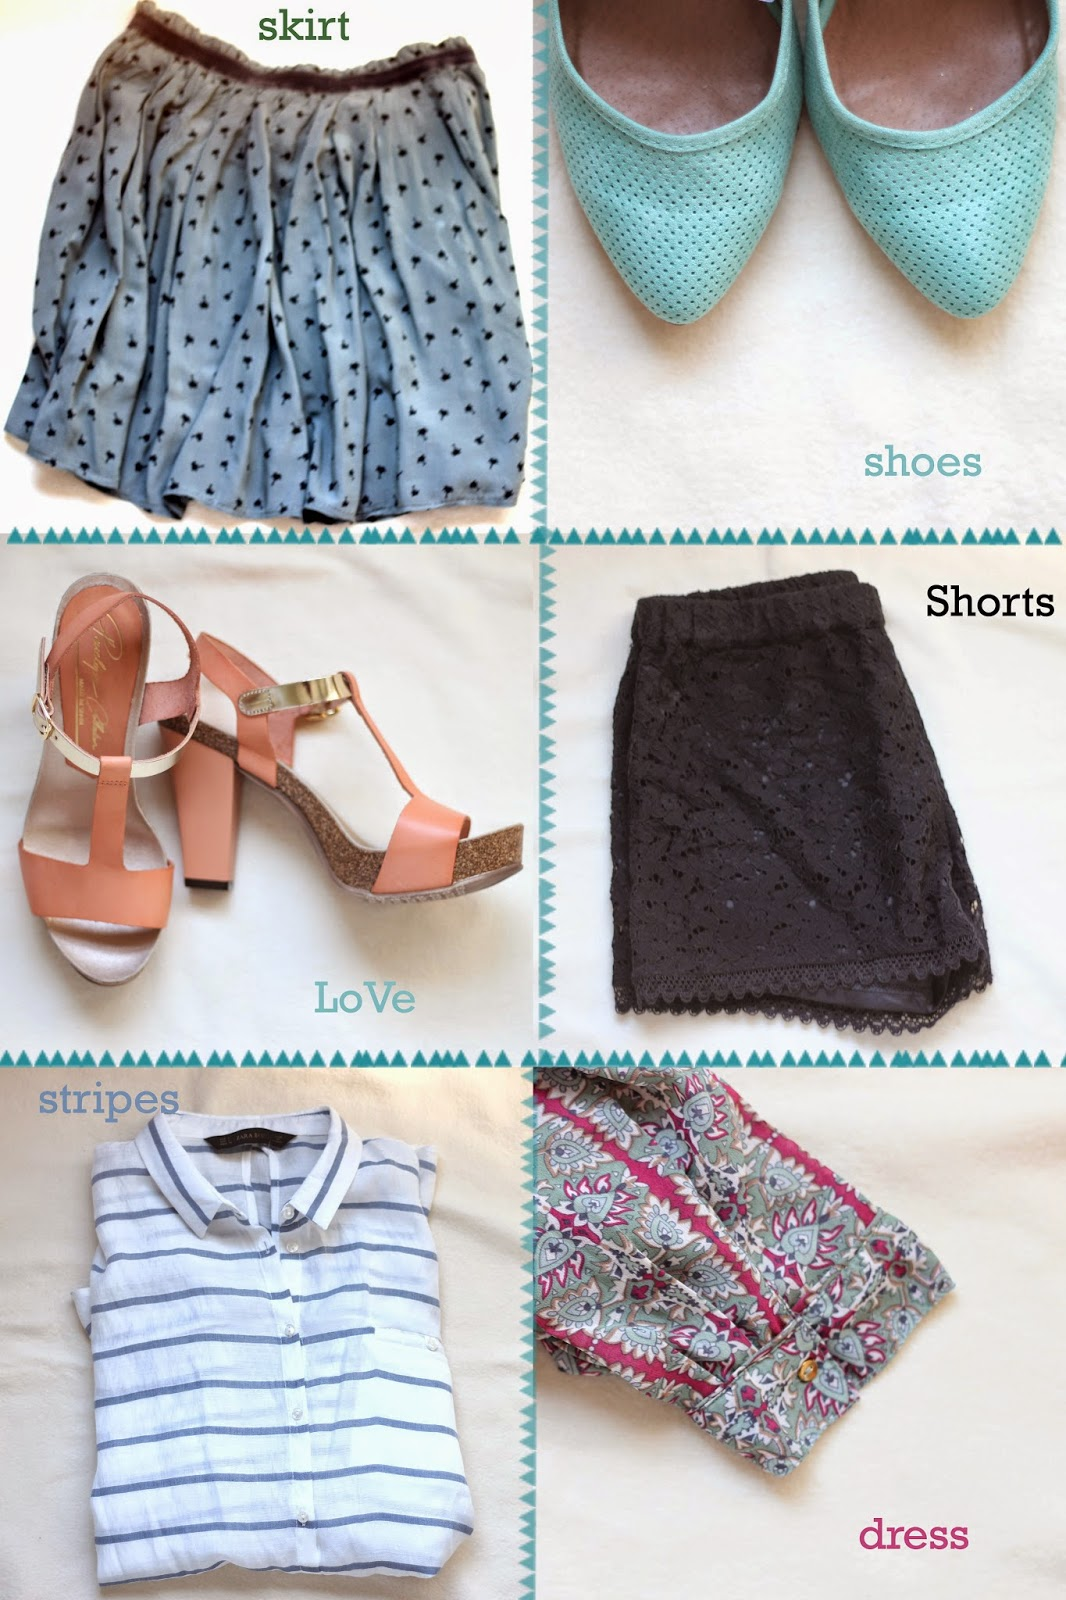 photo-falda_palmeras-nide_shoes-mint_shoes_primark-lace_shorts